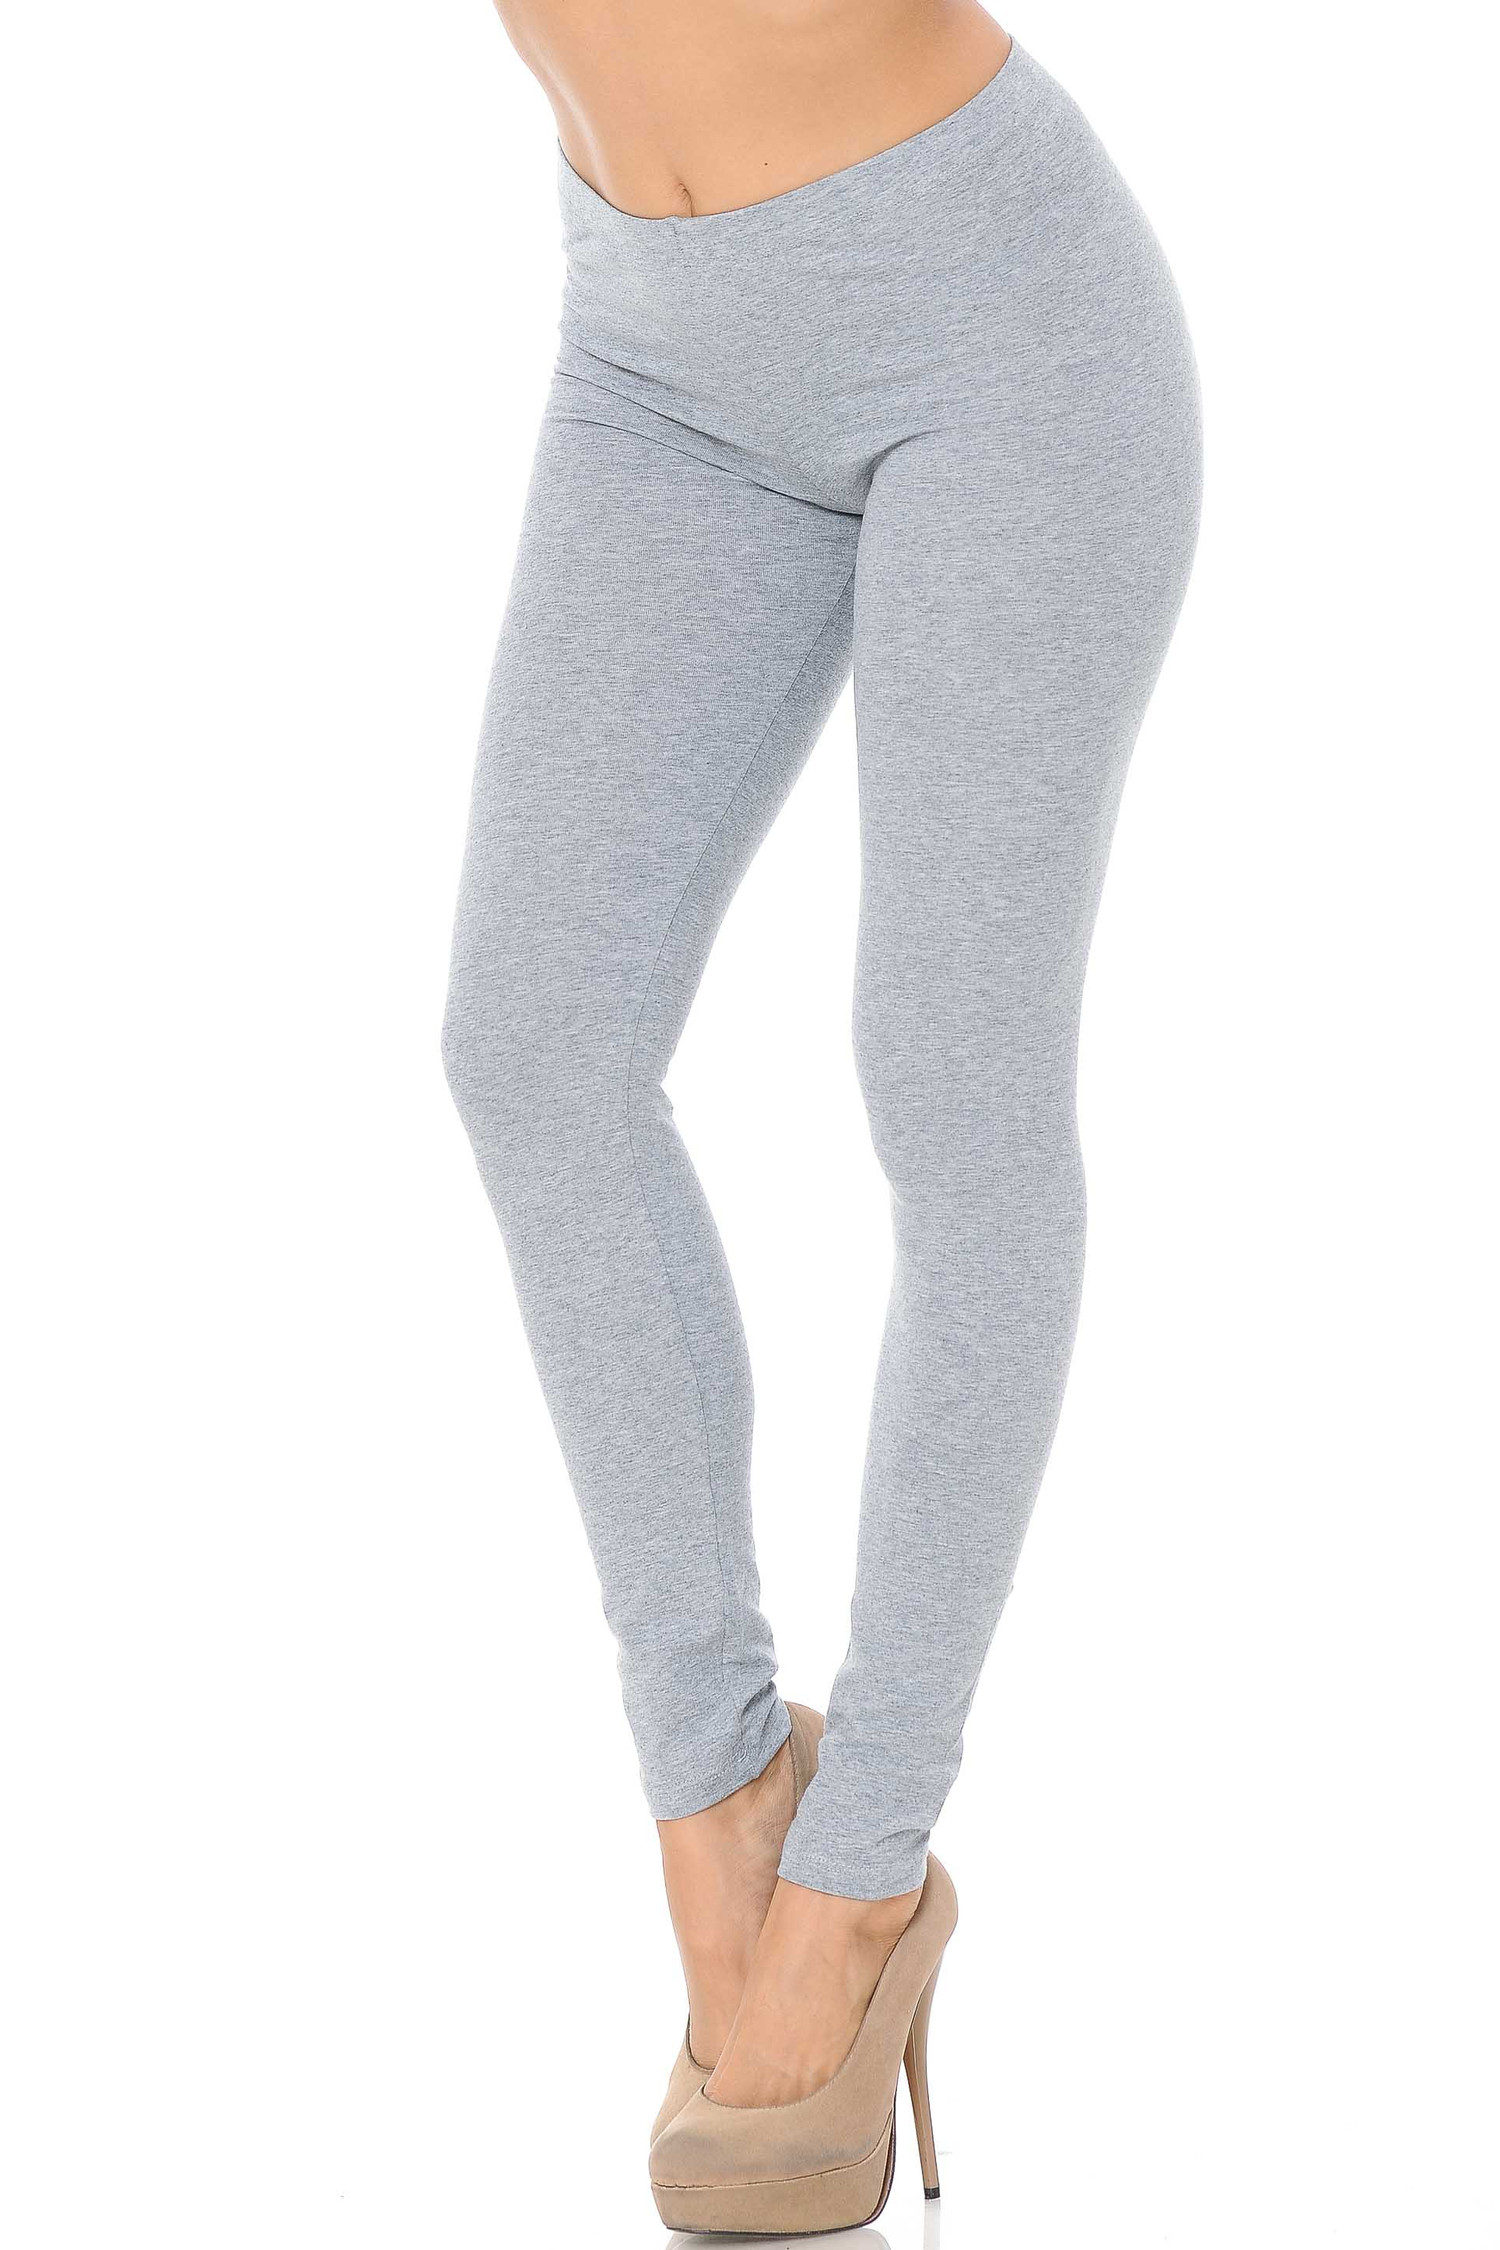 45 degree angle image of female model wearing a heather gray pair of made in the USA cotton leggings showing  a just below the belly button rise and full length going to the ankles.